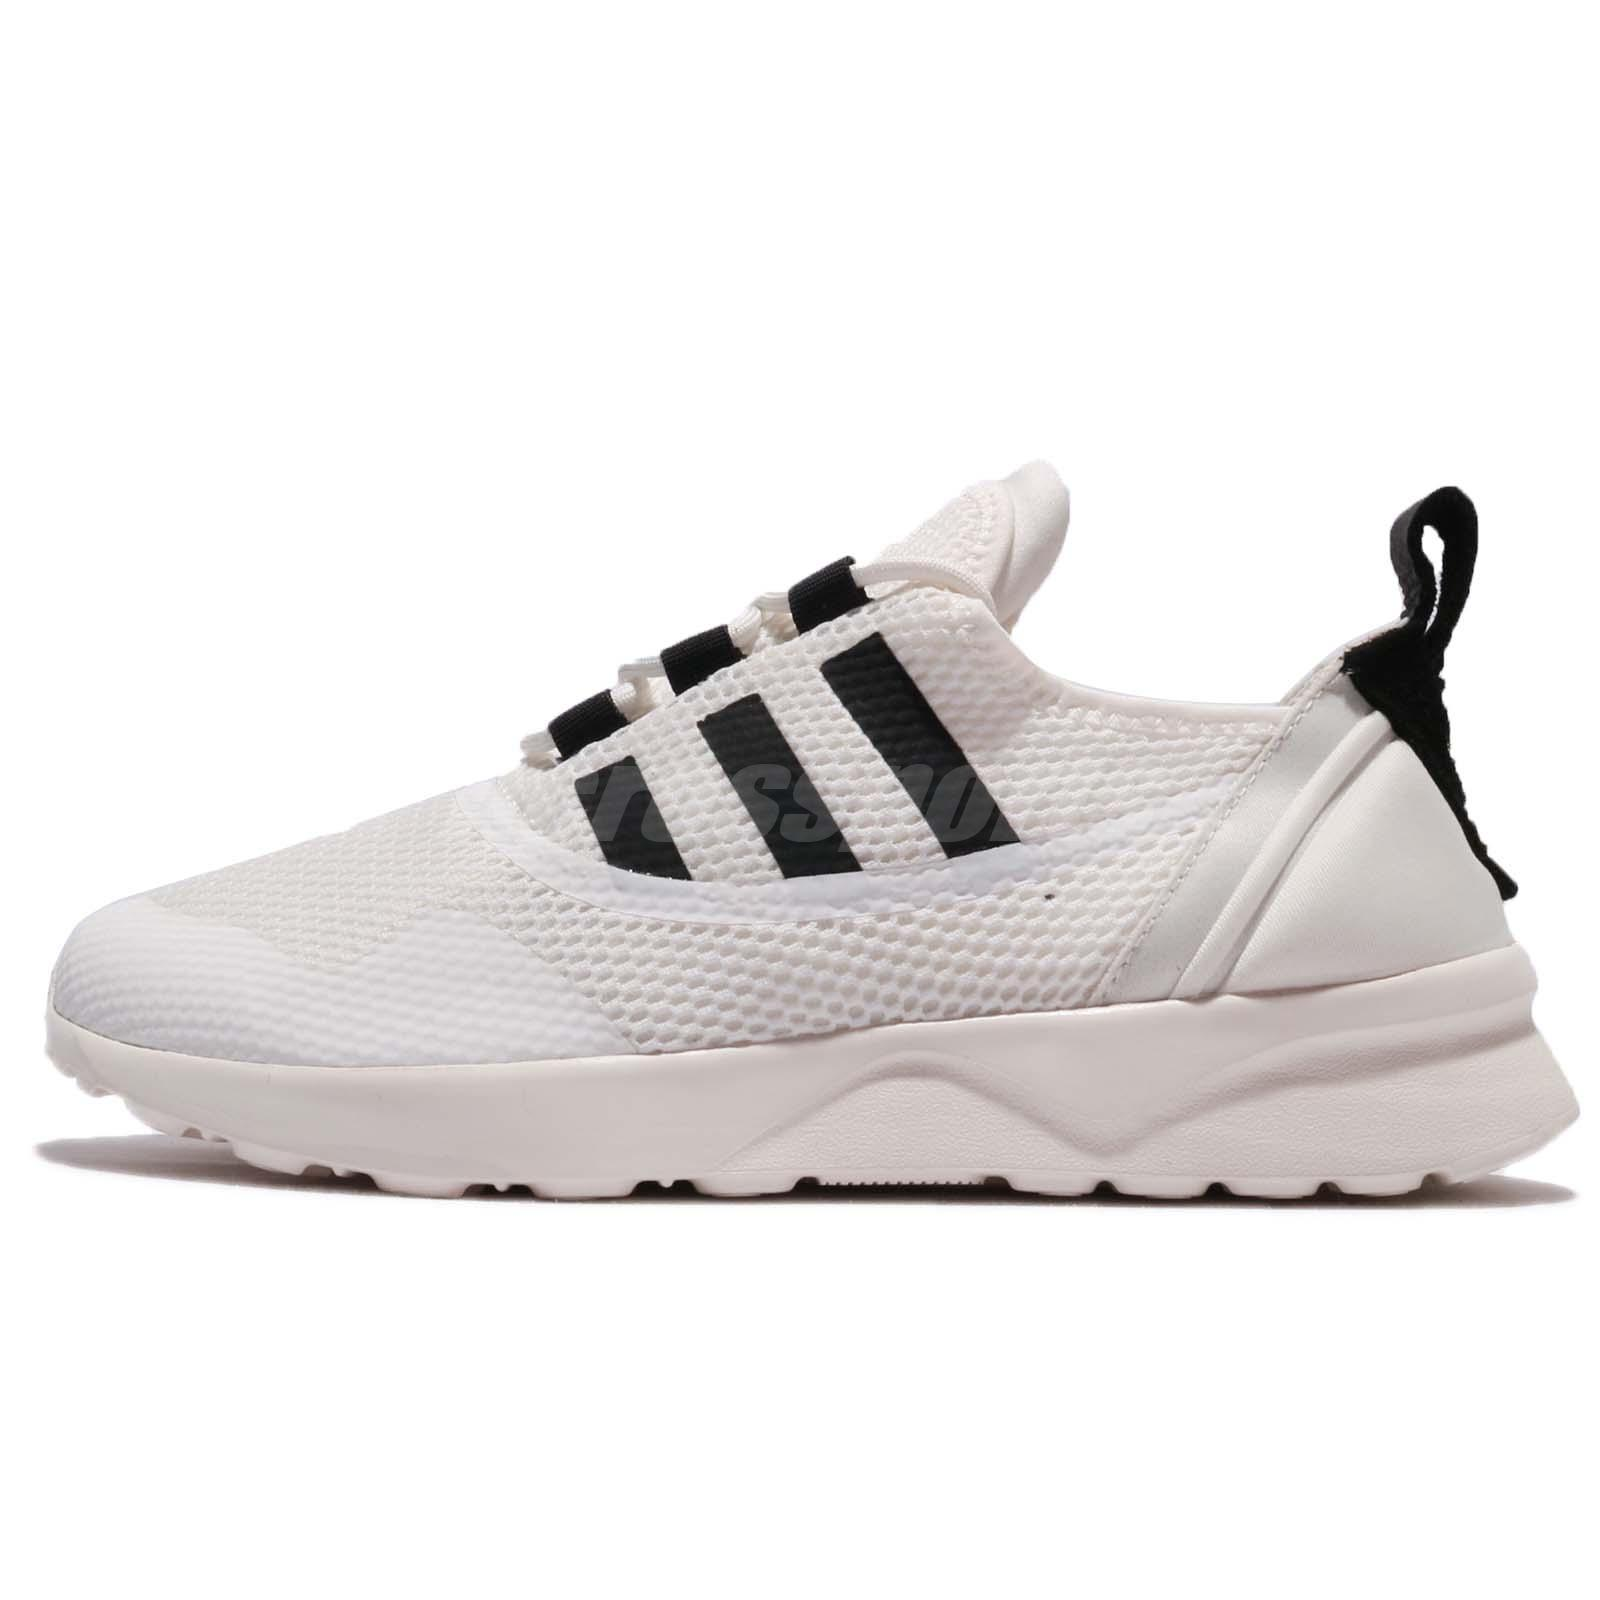 promo code dd046 79a8a Details about adidas Originals ZX Flux ADV Virtue W White Black Women  Running Shoes CP9883